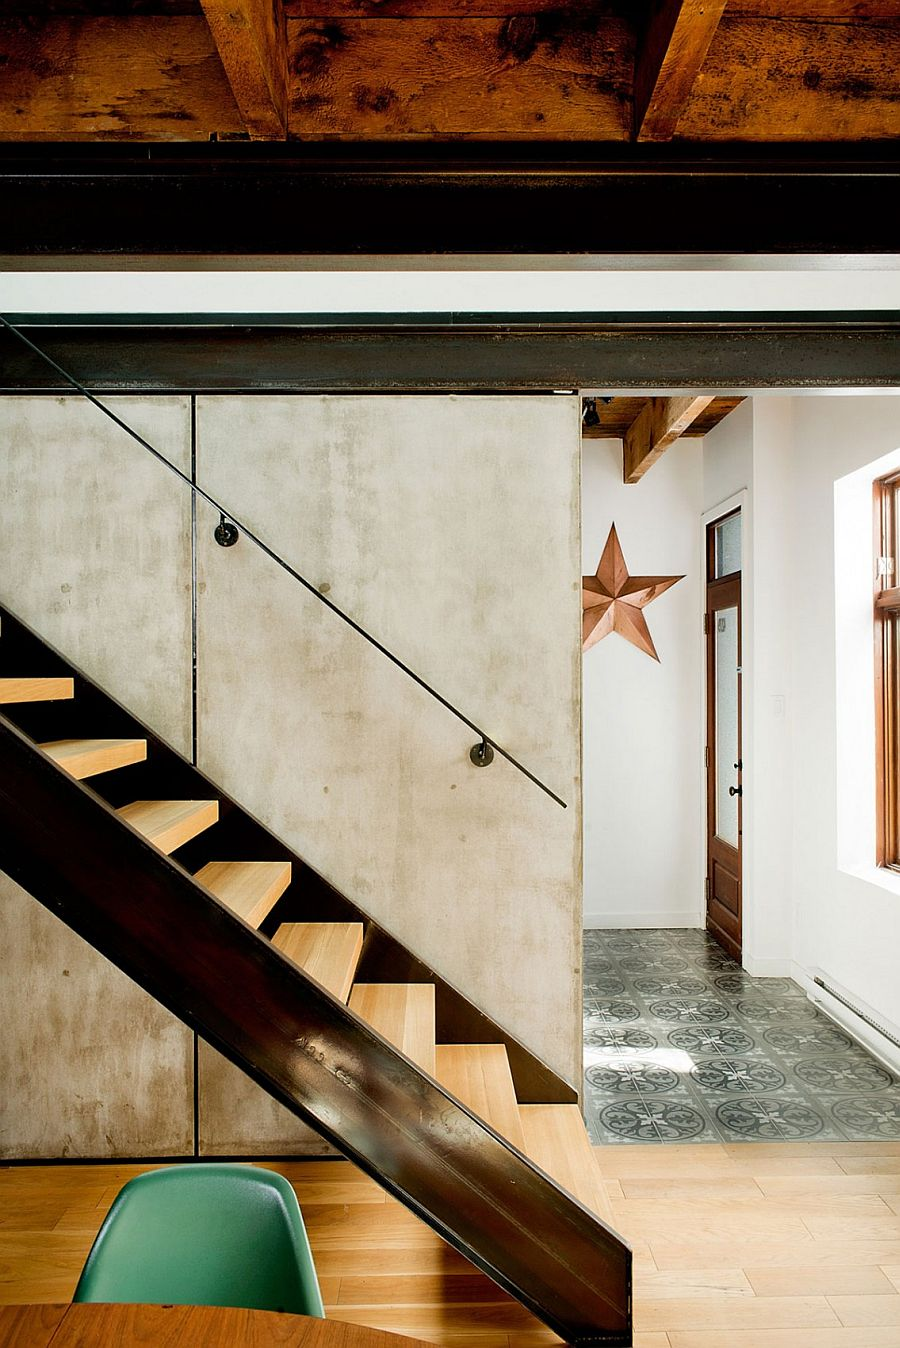 Simple and elegant staircase design saves up on space